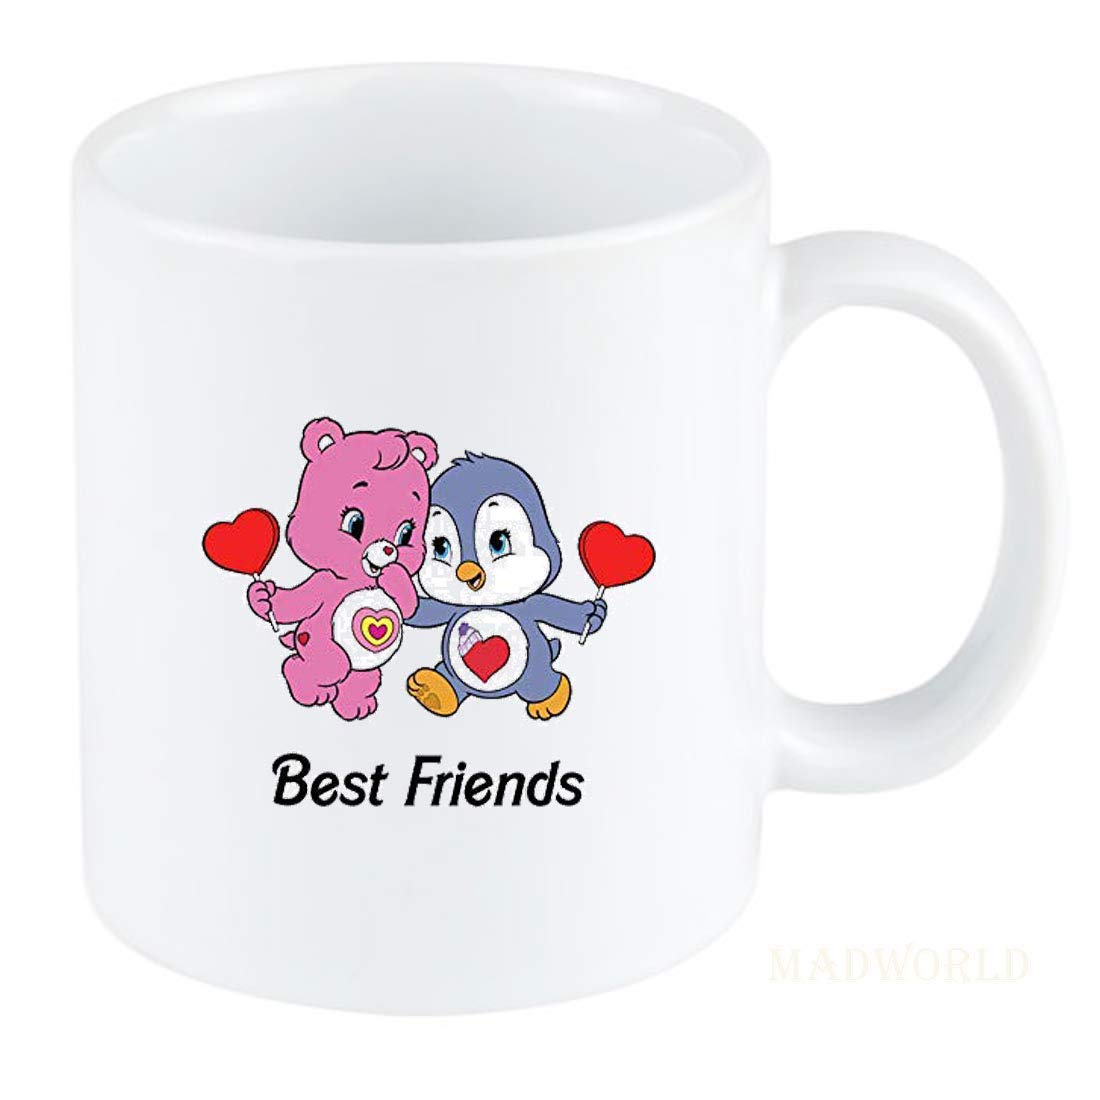 Buy Madworld Best Friends Attractive Friendship Day Quotes With Beautifull Cute Image Printed Ceramic White Coffee Mug Best Gift For Birthday Friends Family Boyfriend Valentine Day Online At Low Prices In India